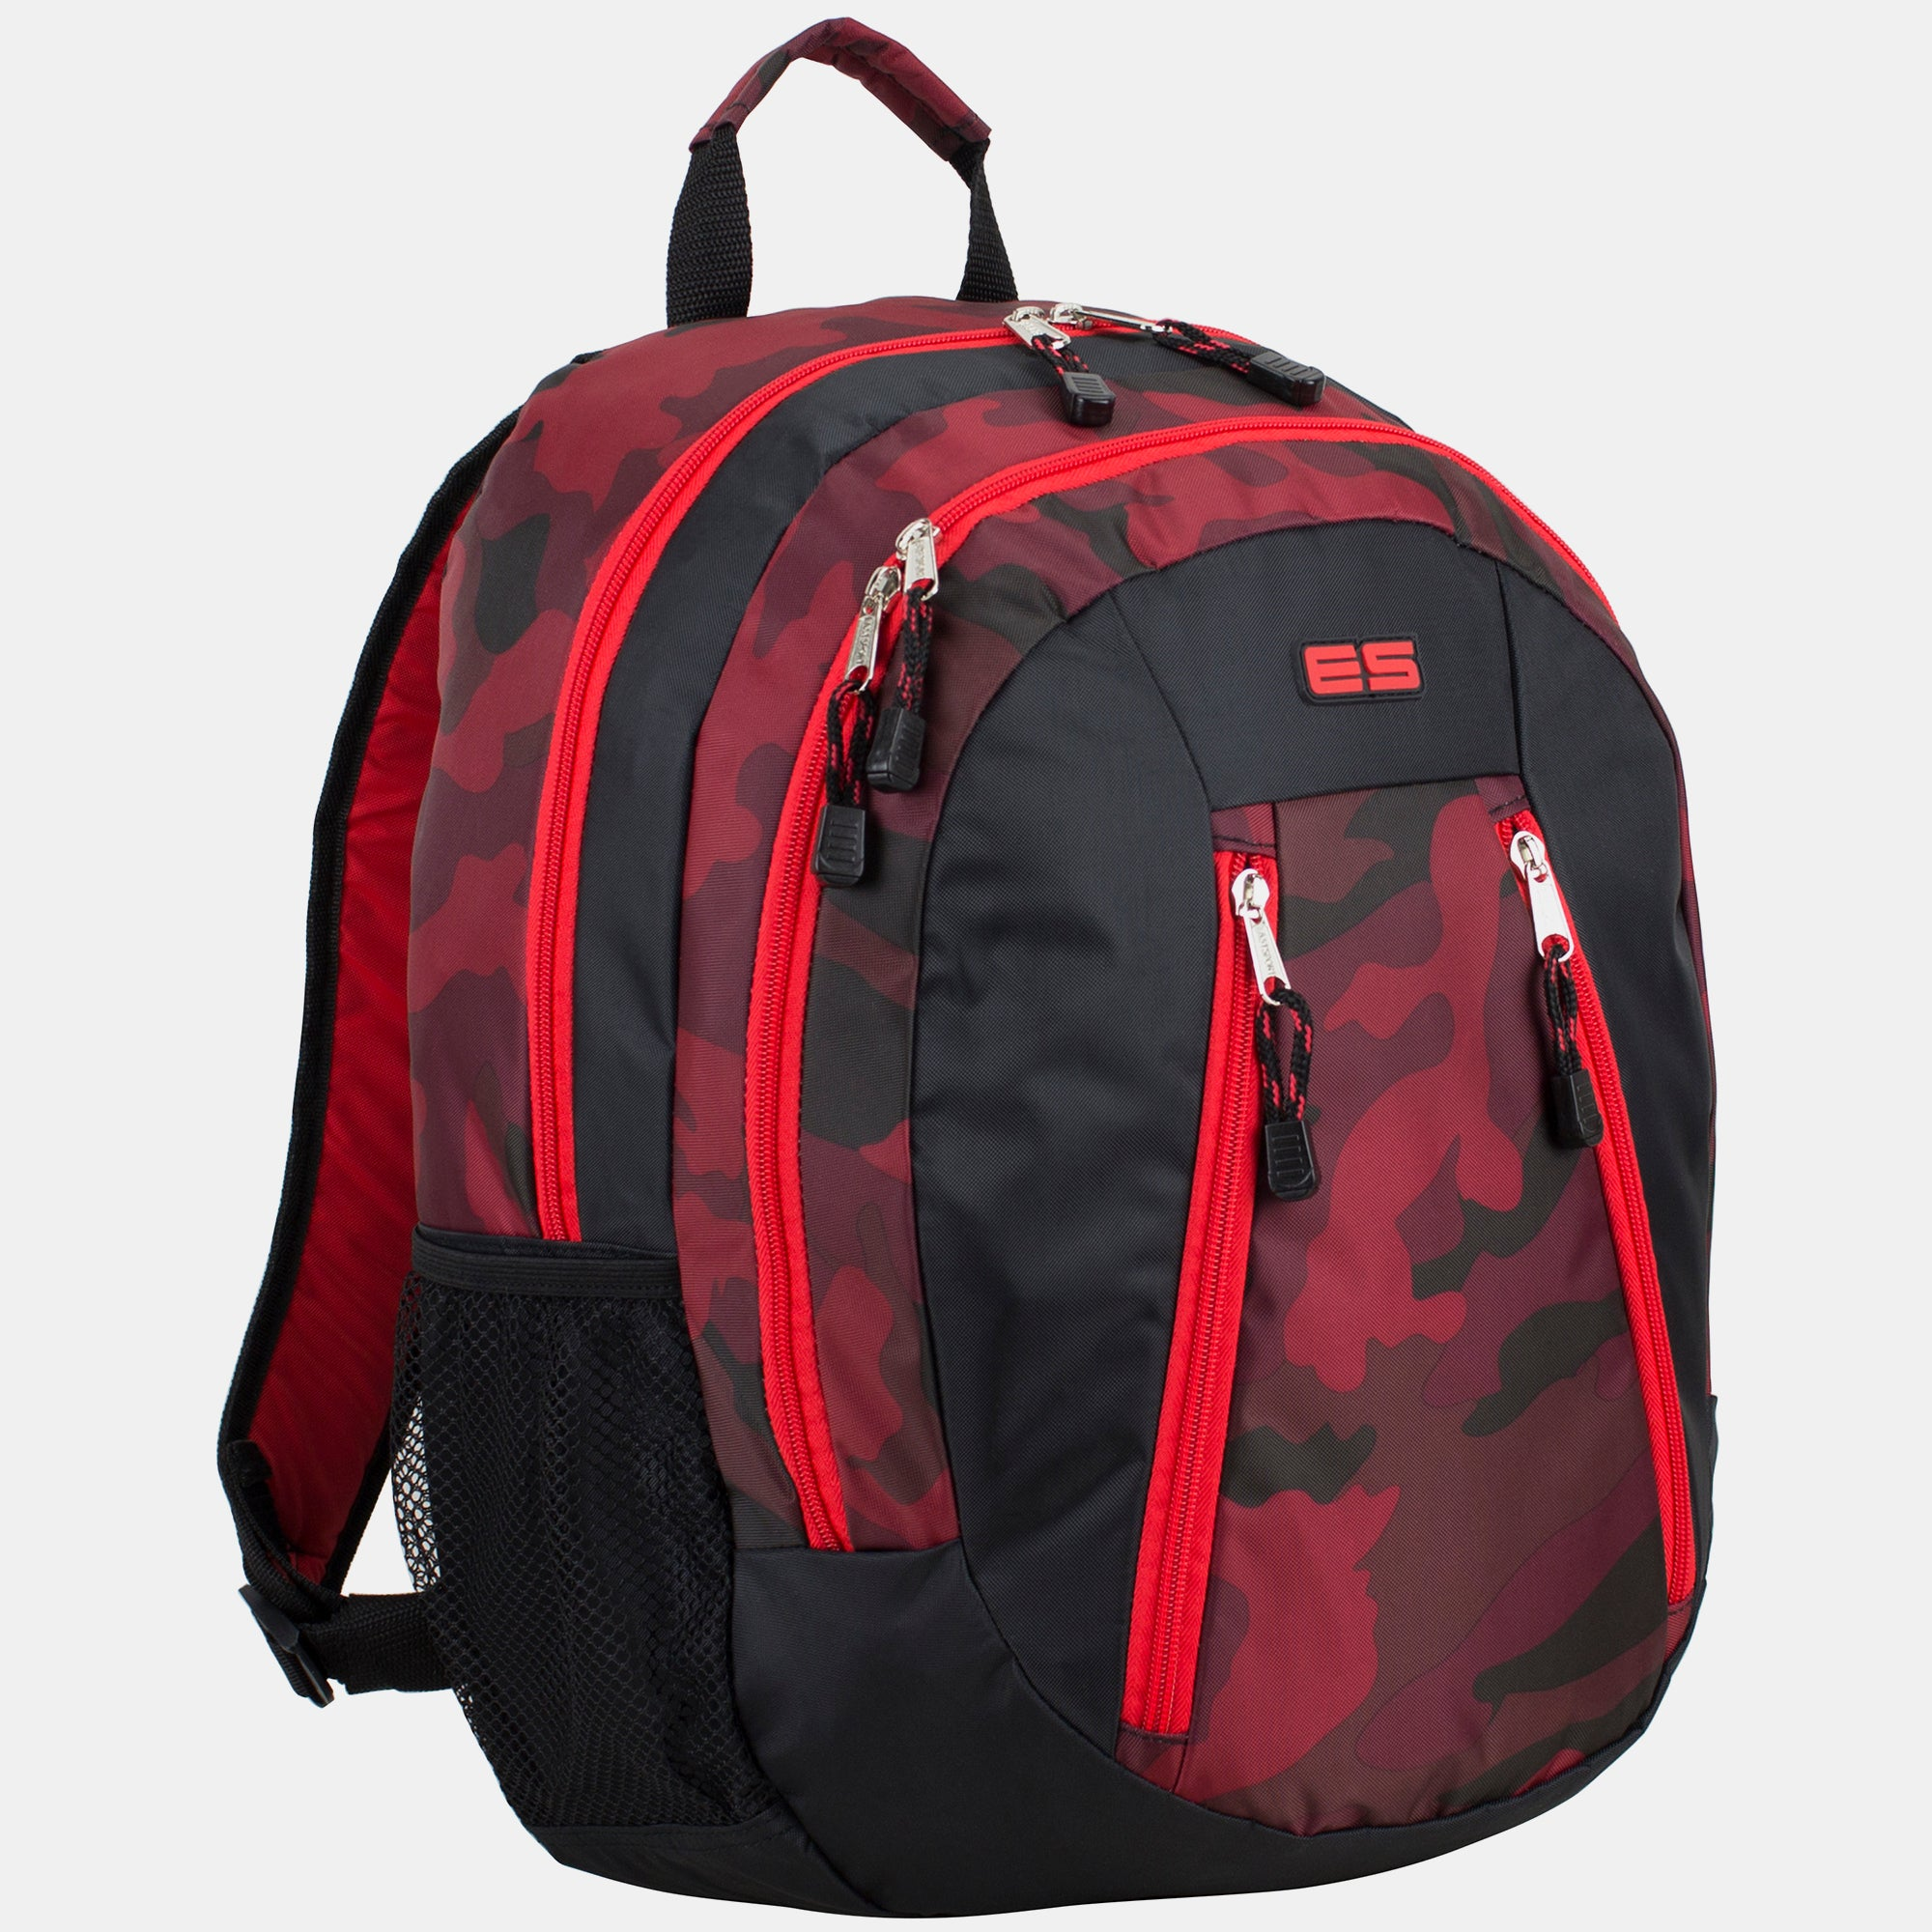 Eastsport Absolute Sport Backpack 2.0